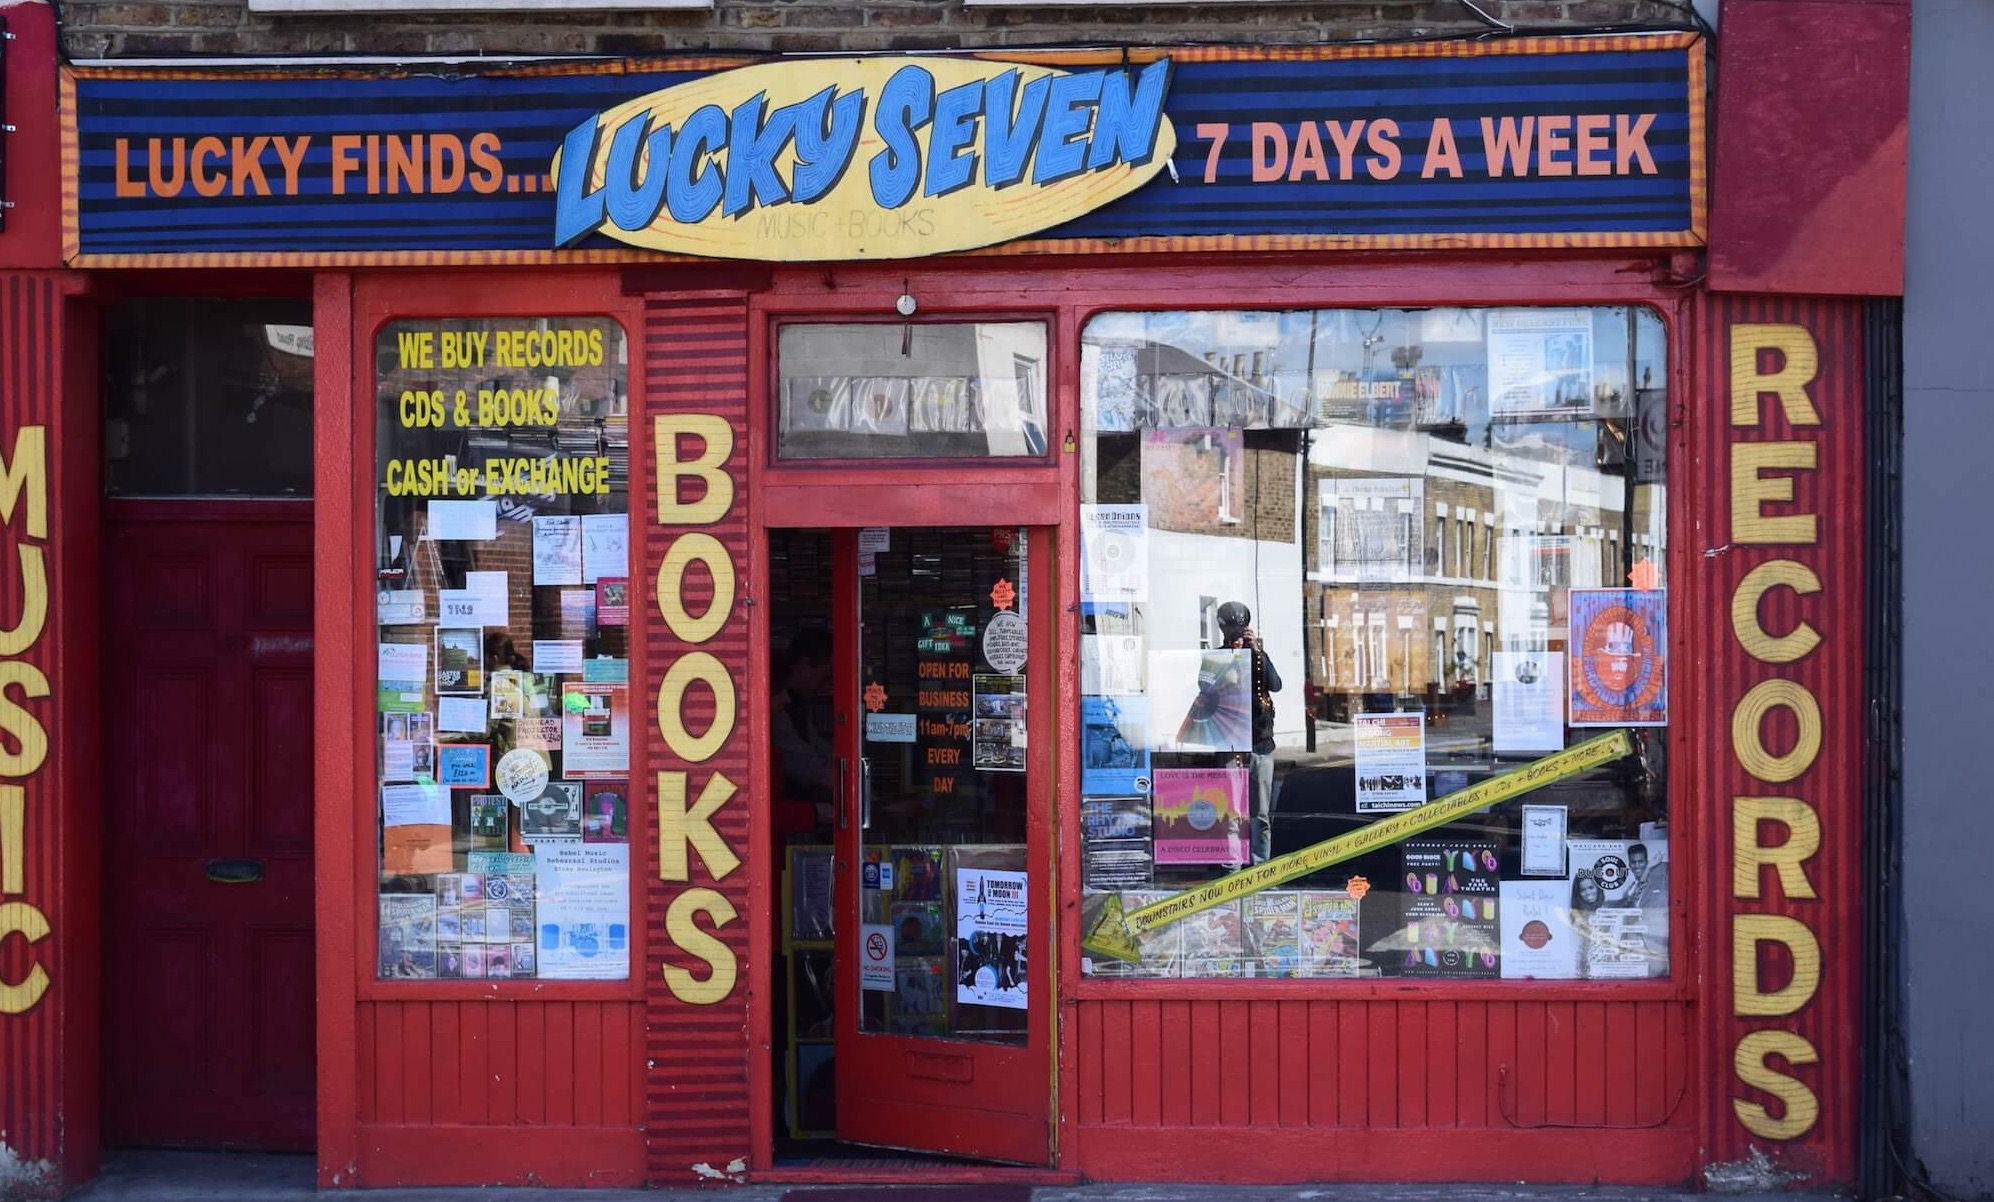 Paying homage to London's beloved Lucky Seven record shop